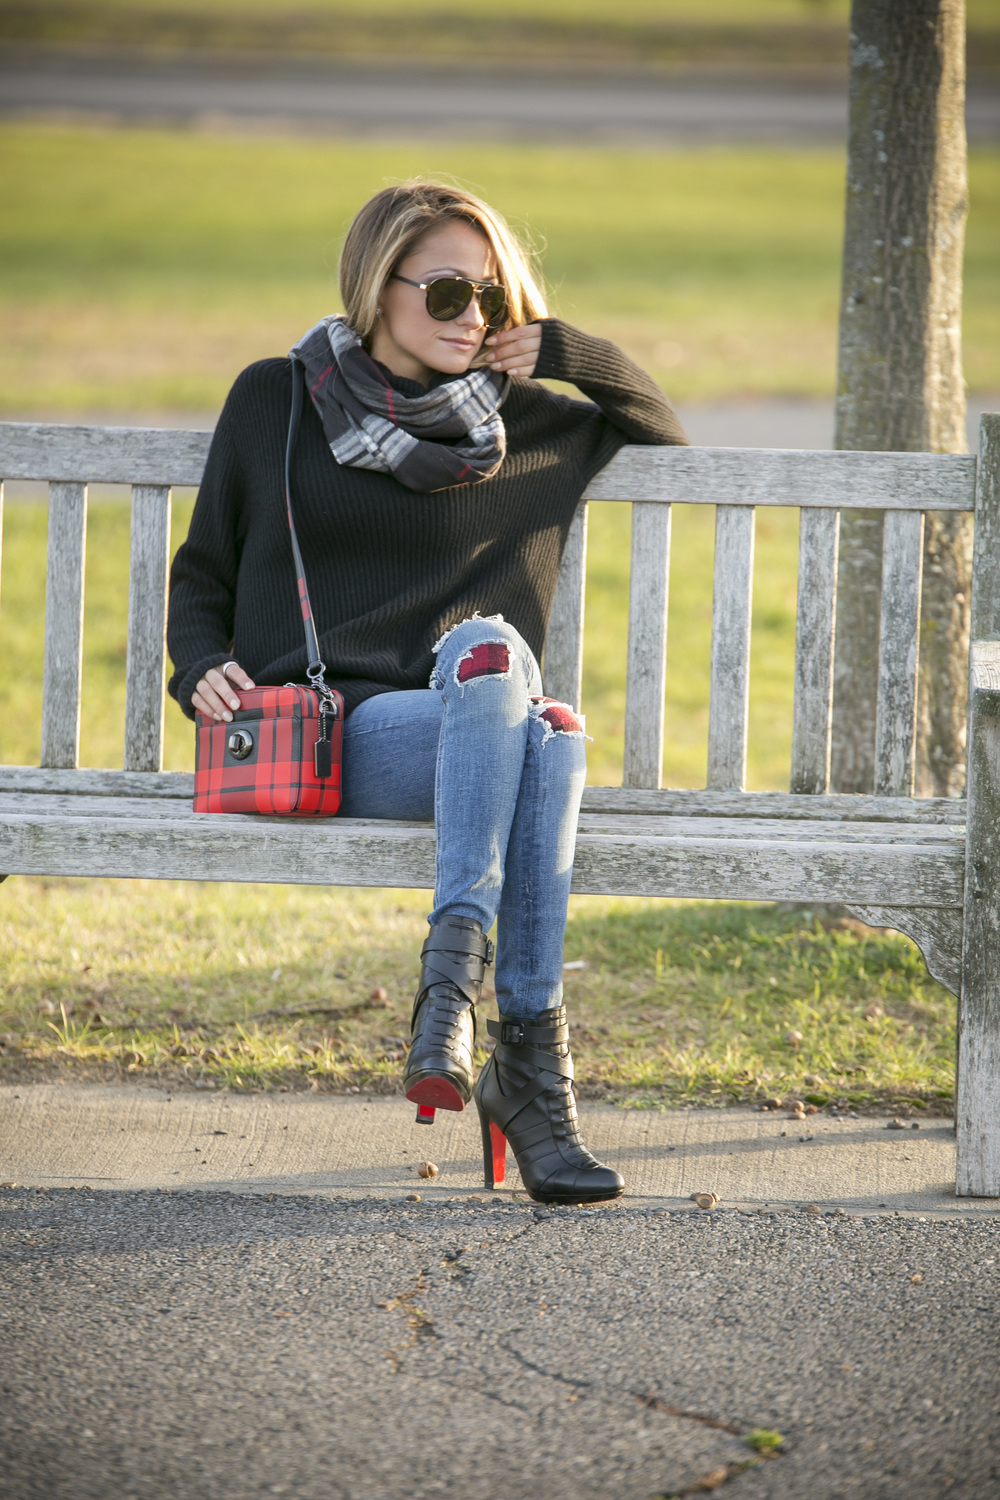 streetstyle by Lauren Recchia wearing Vince cashmere sweater, Rag & Bone patched jeans, Christian Louboutin boots, and Coach plaid bag